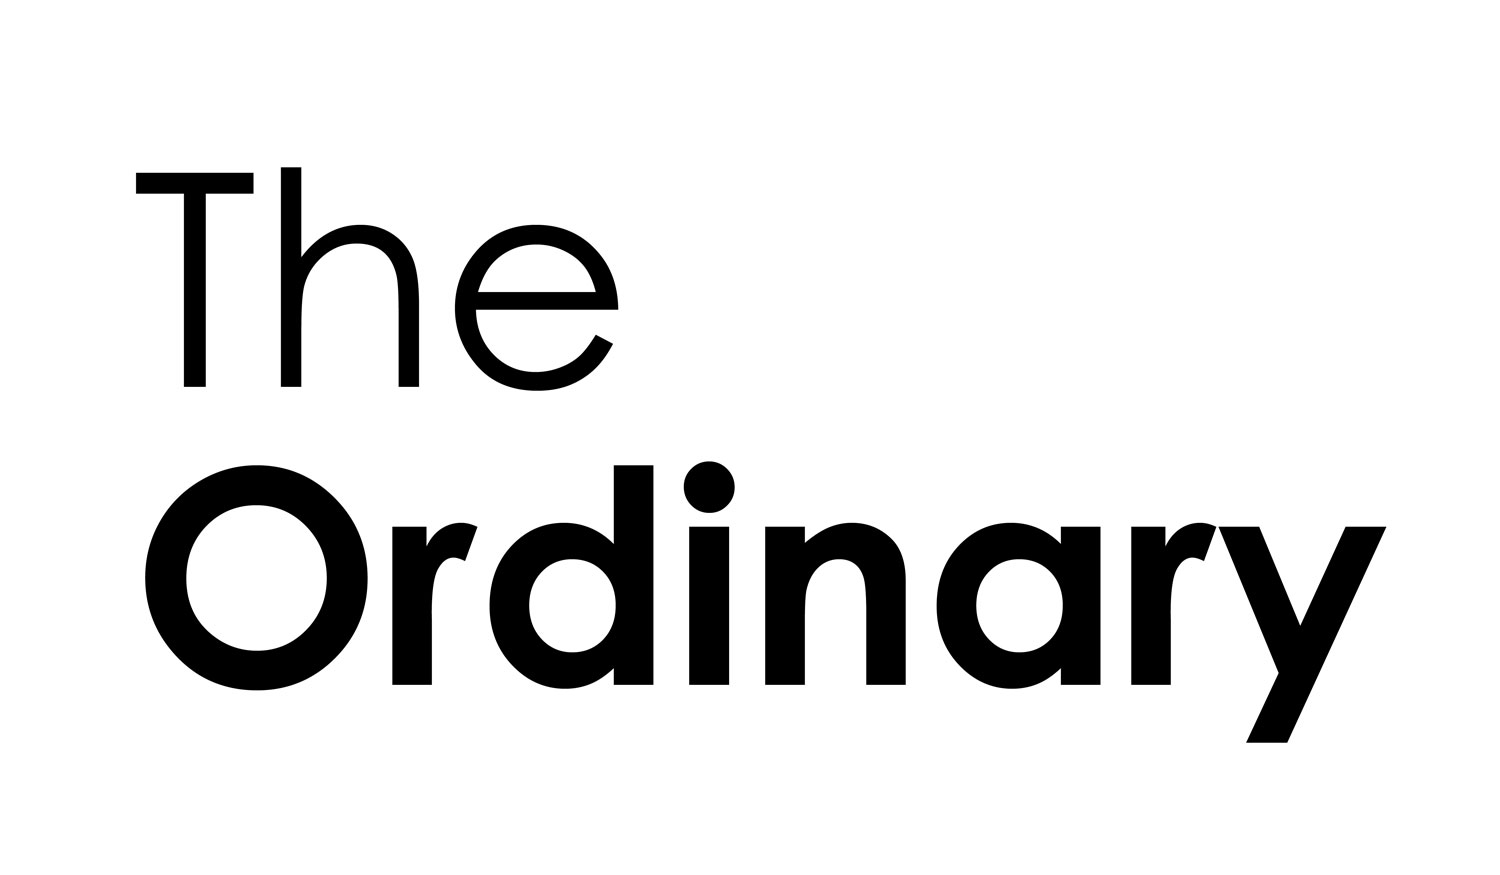 The ordinary logo